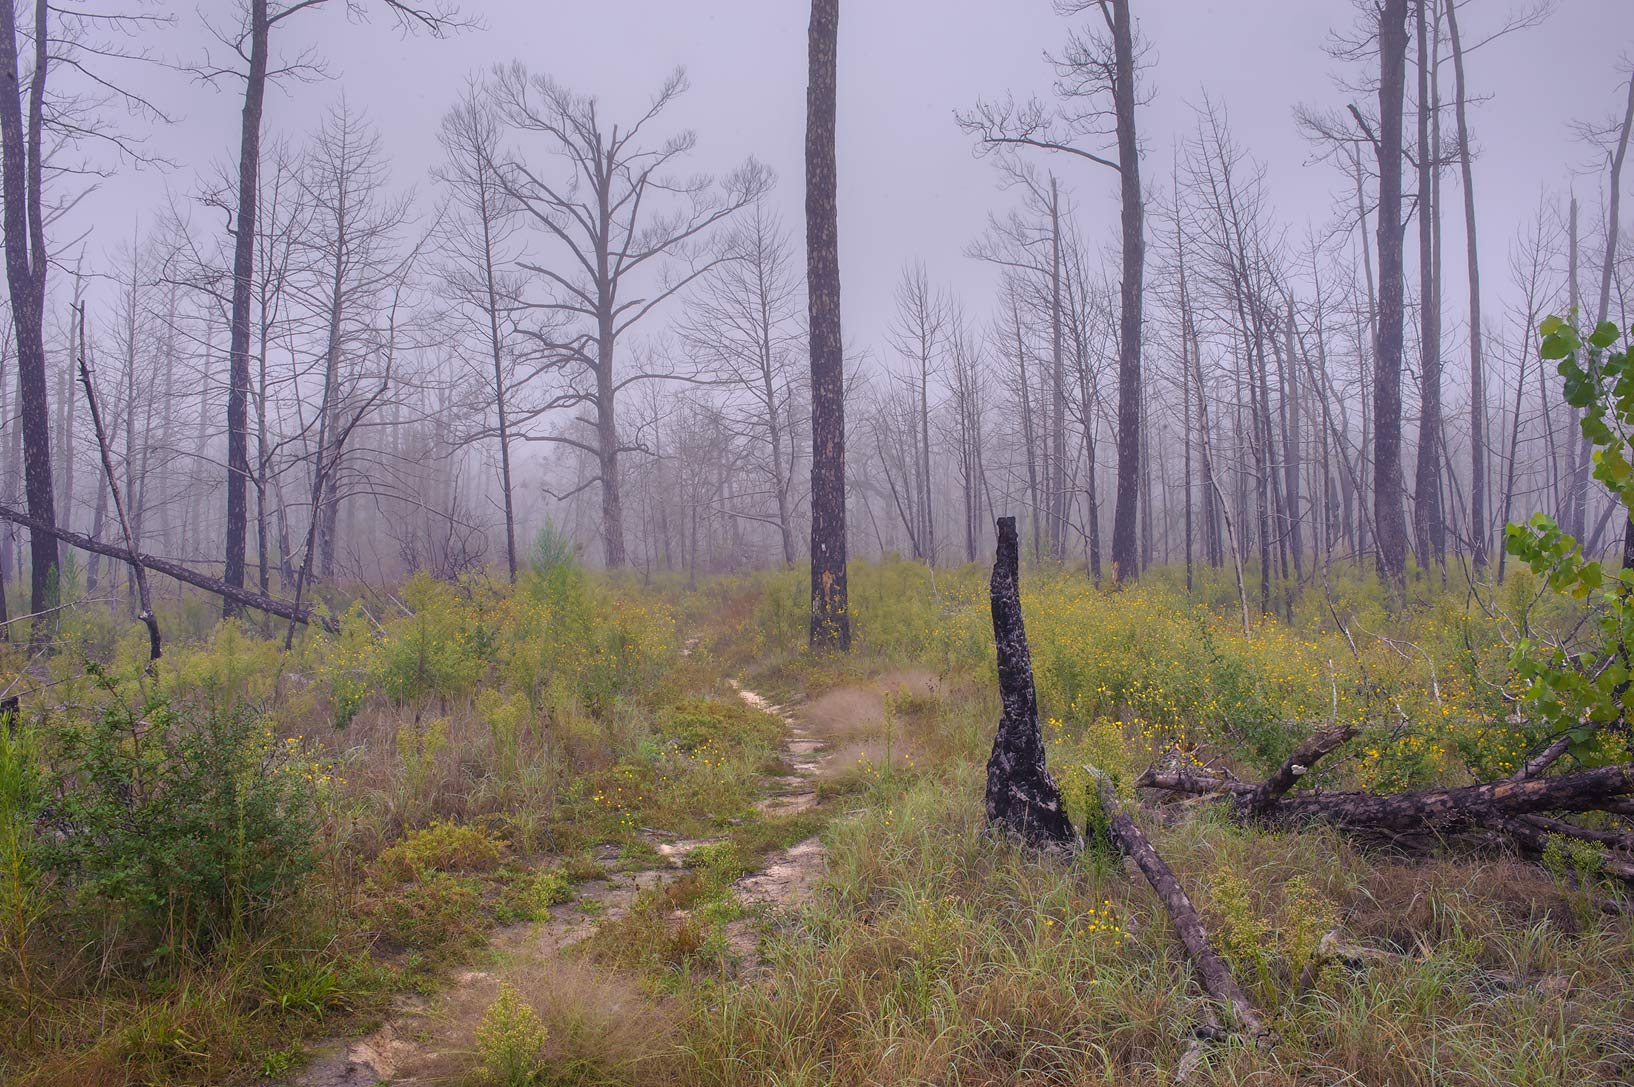 Area of south end of Roosevelt Cutoff Trail in Bastrop State Park. Bastrop, Texas